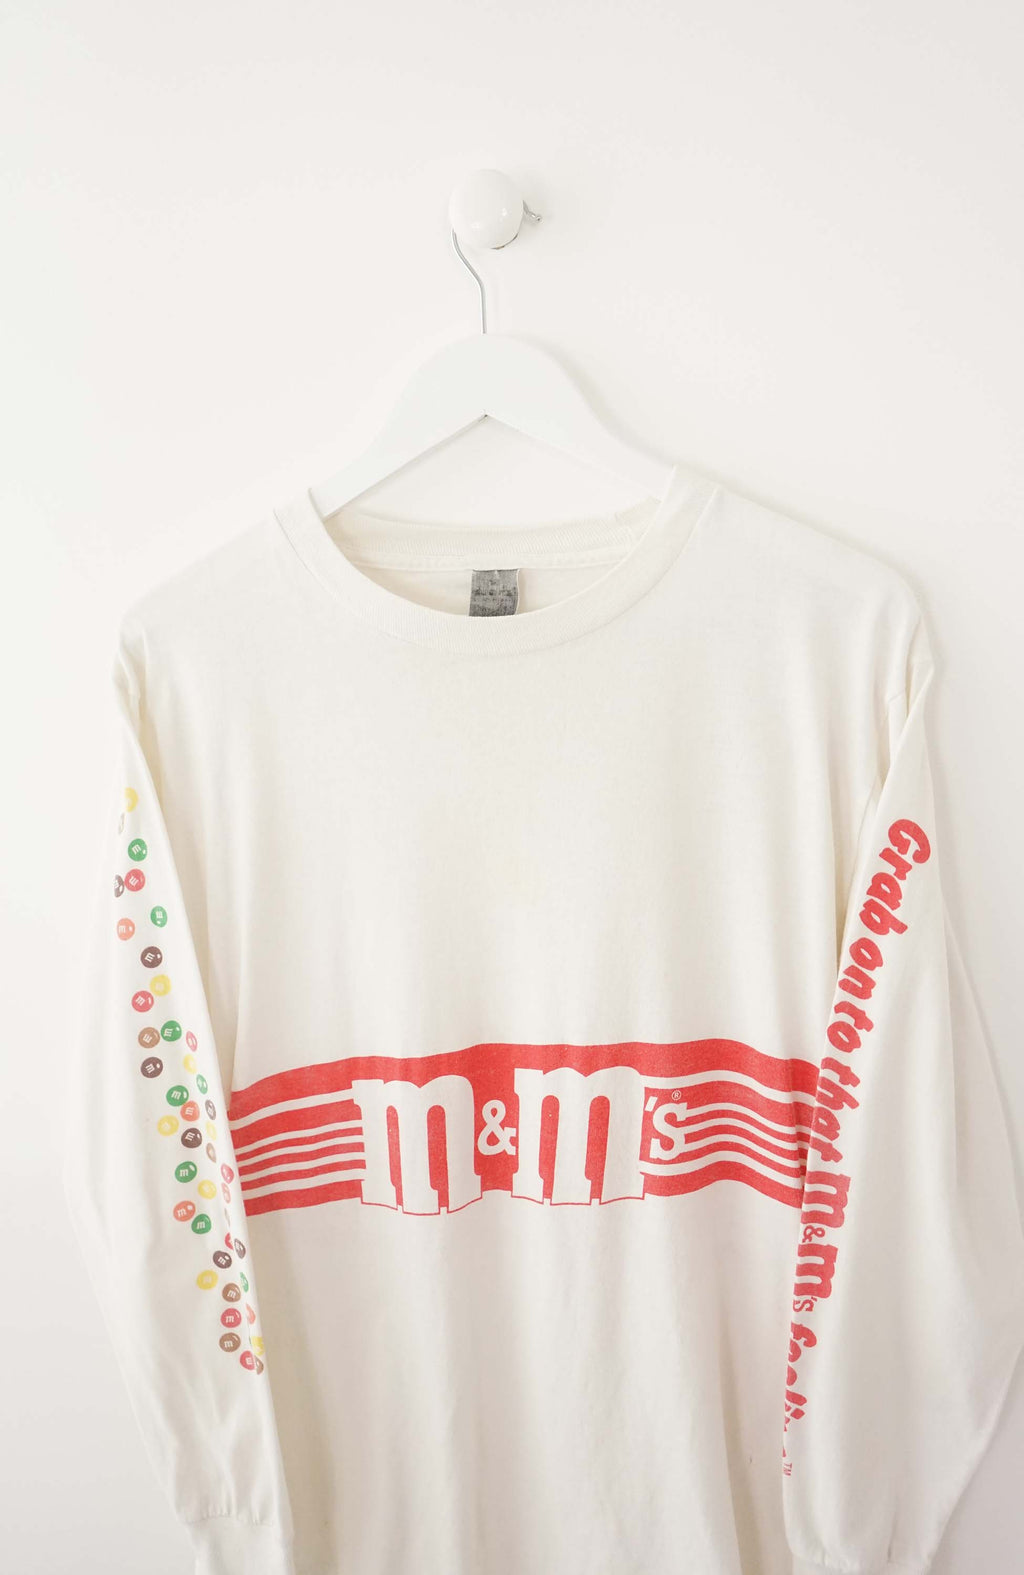 VINTAGE M&M CANDY T-SHIRT (M)